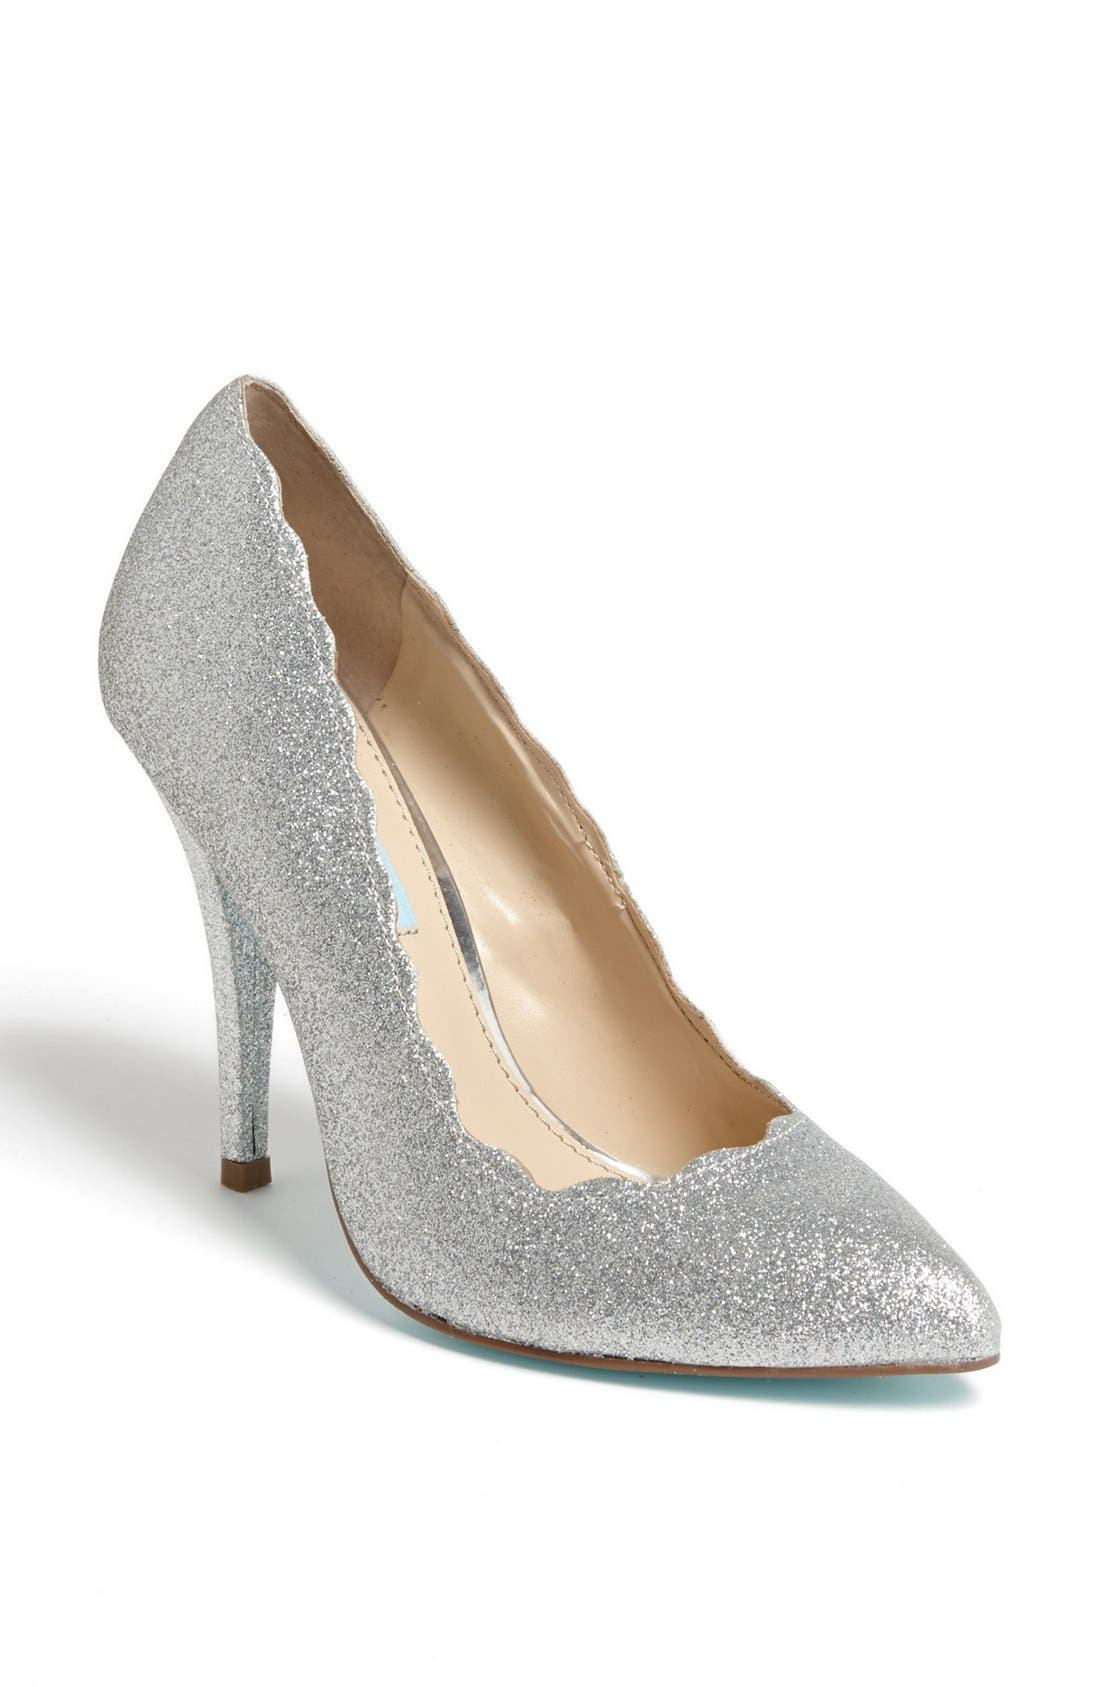 Main Image - Blue by Betsey Johnson 'Altar' Pump